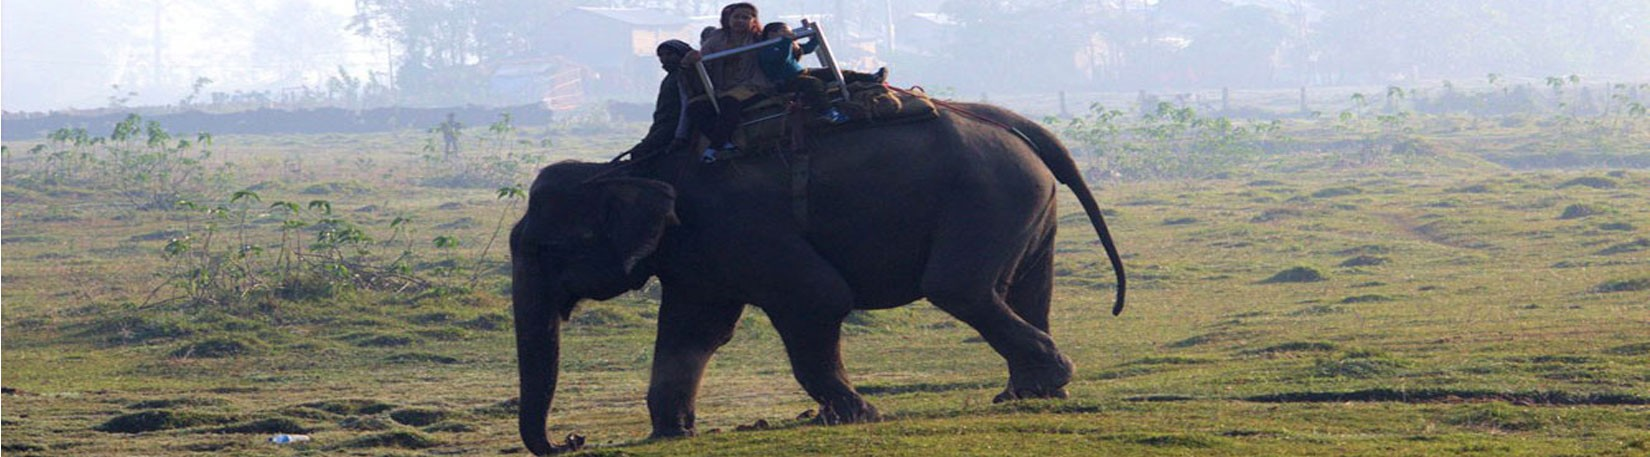 Elephant Riding at Chitwan National Park